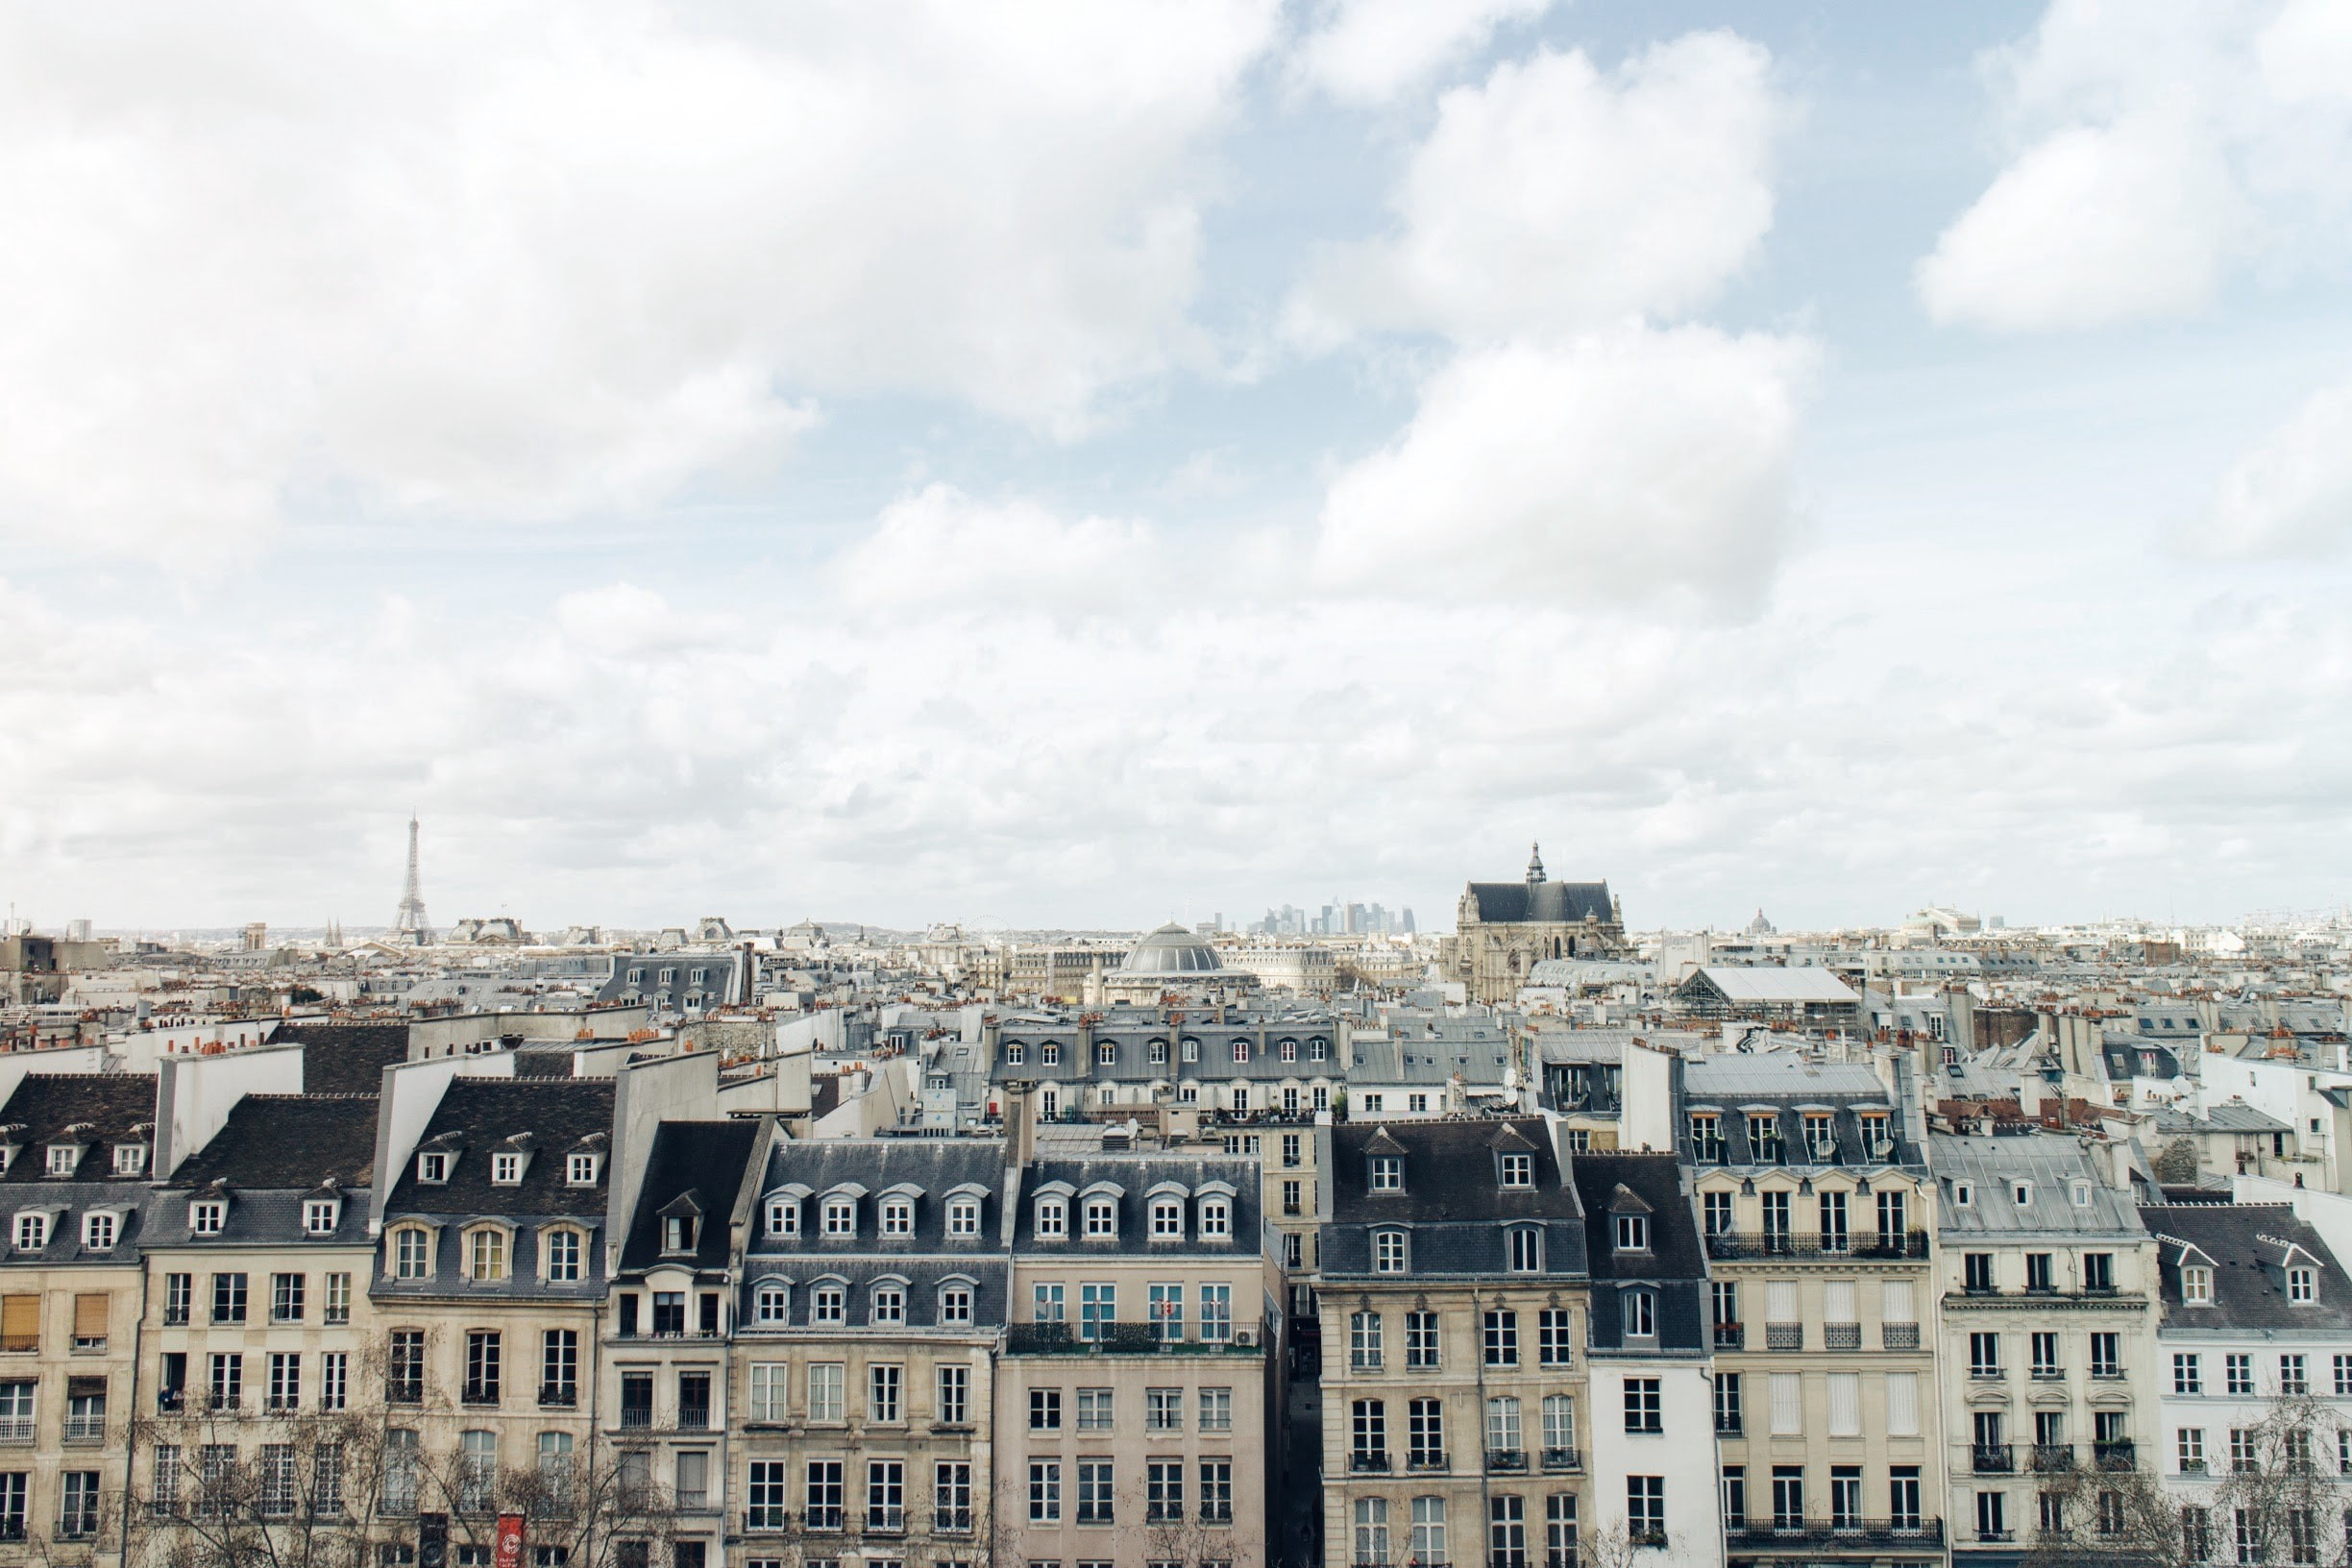 A French city scene